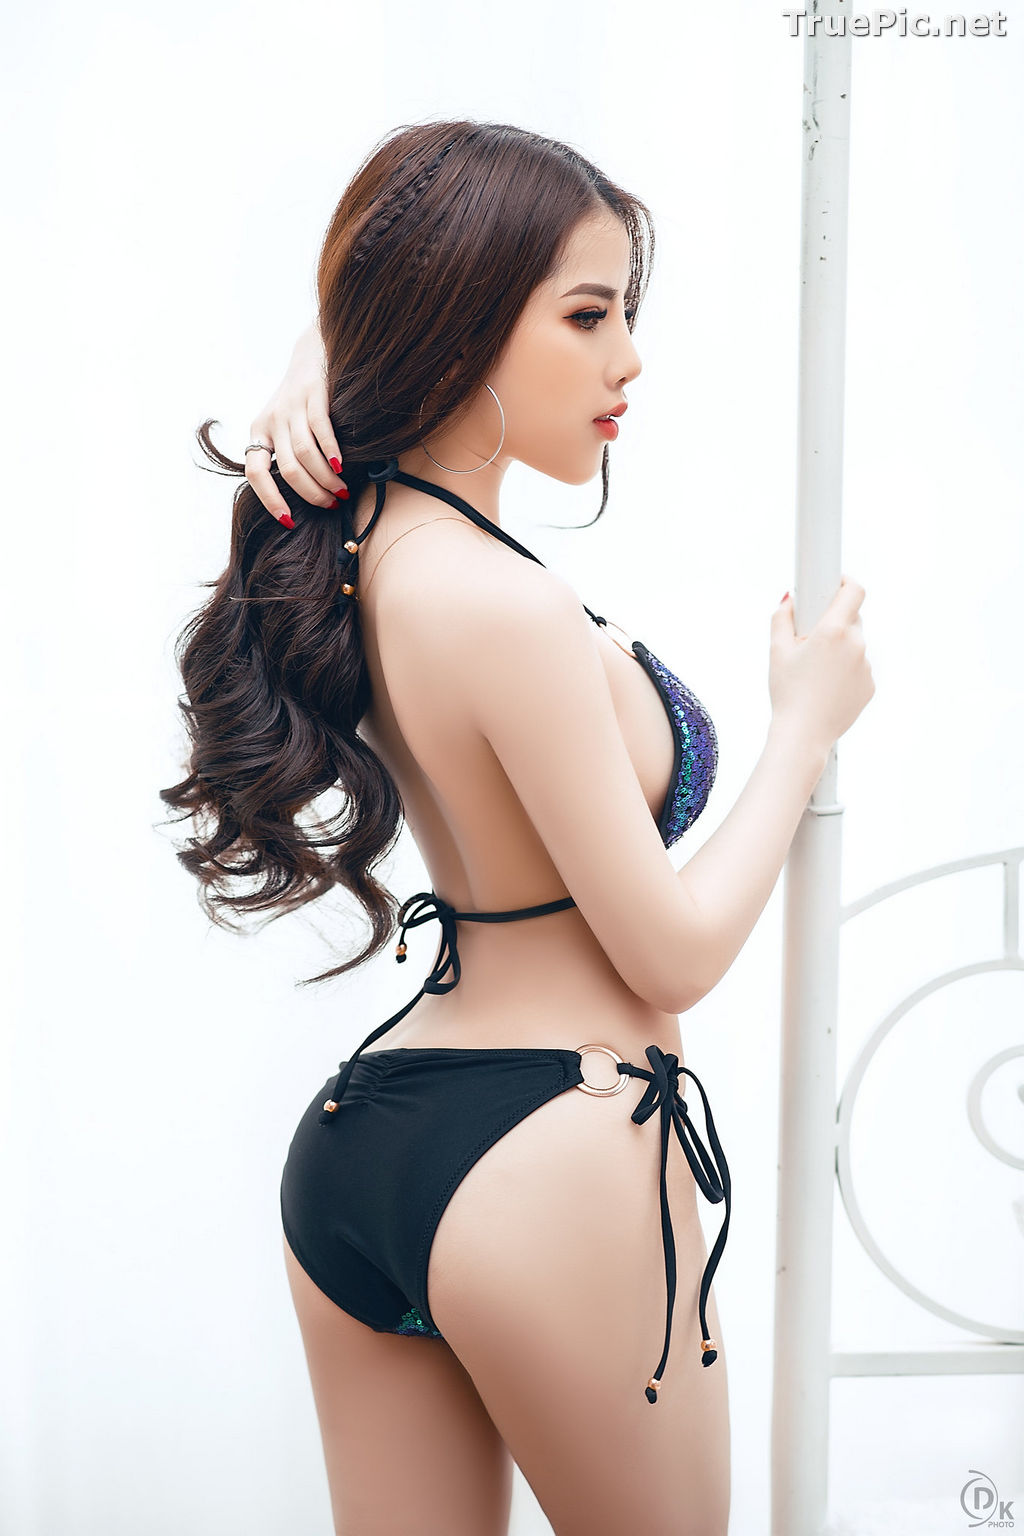 Image The Beauty of Vietnamese Girls – Photo Collection 2020 (#22) - TruePic.net - Picture-5